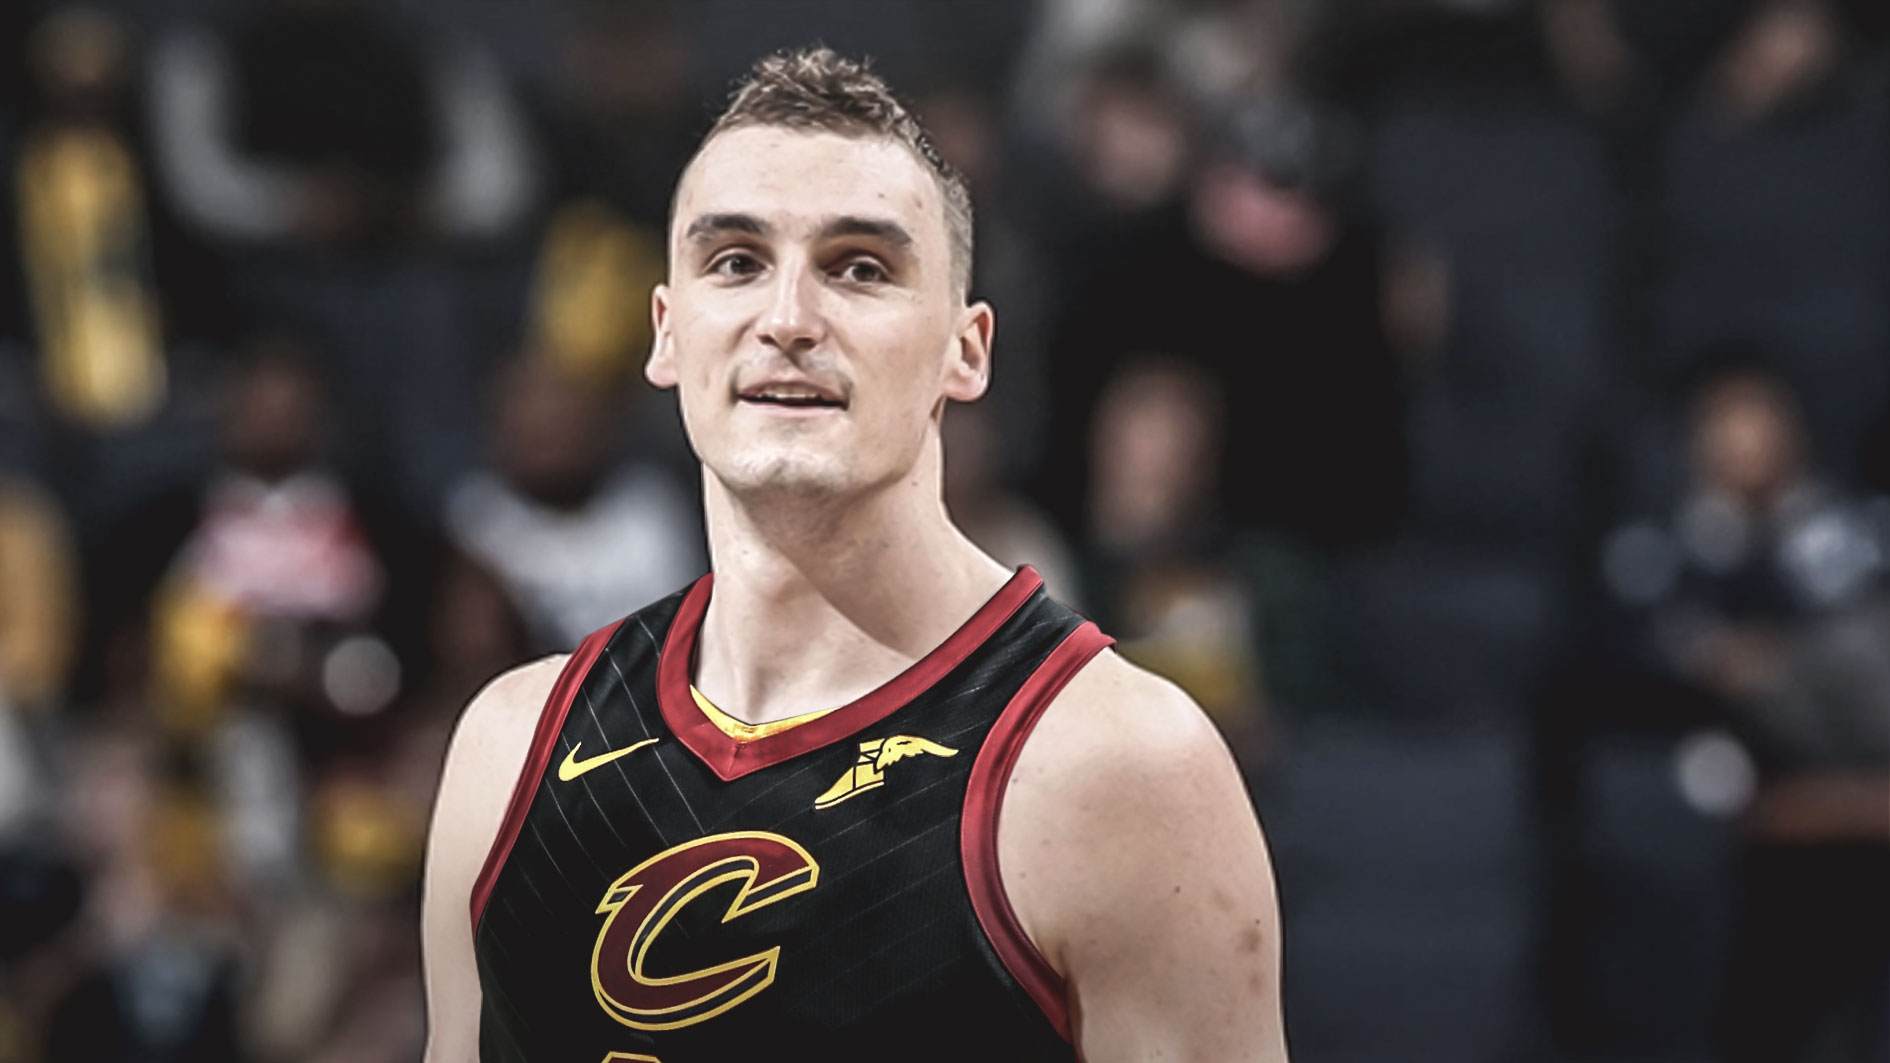 sports shoes 59426 d9f65 Cavs news: Sam Dekker claps back at fan, wants to bet on 1 ...